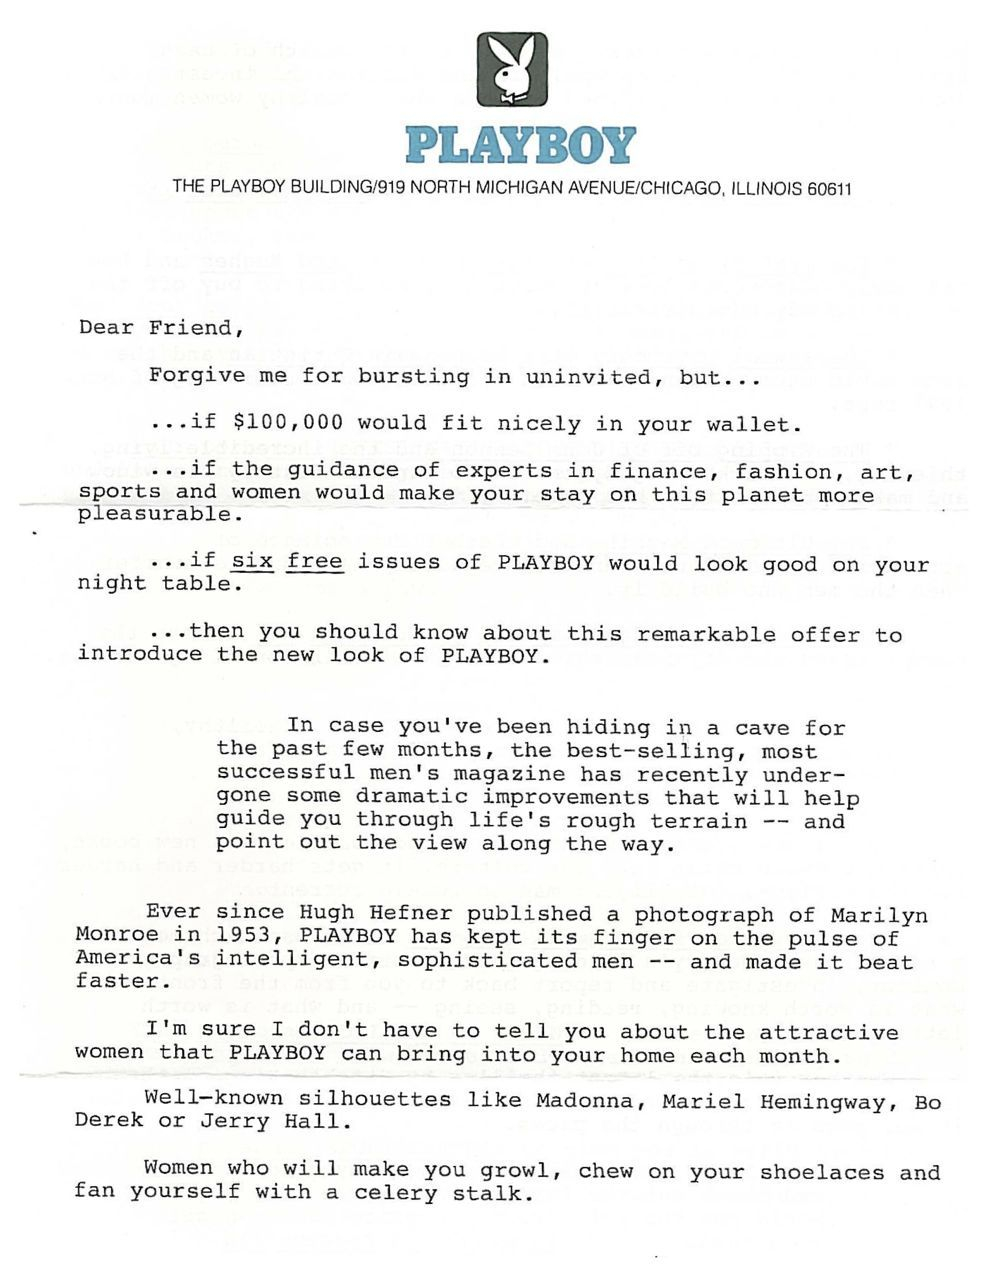 direct mail sales letter template Collection-This was my first of three winning direct mail sales letters for Playboy It won a Gold Folio Award 4-h